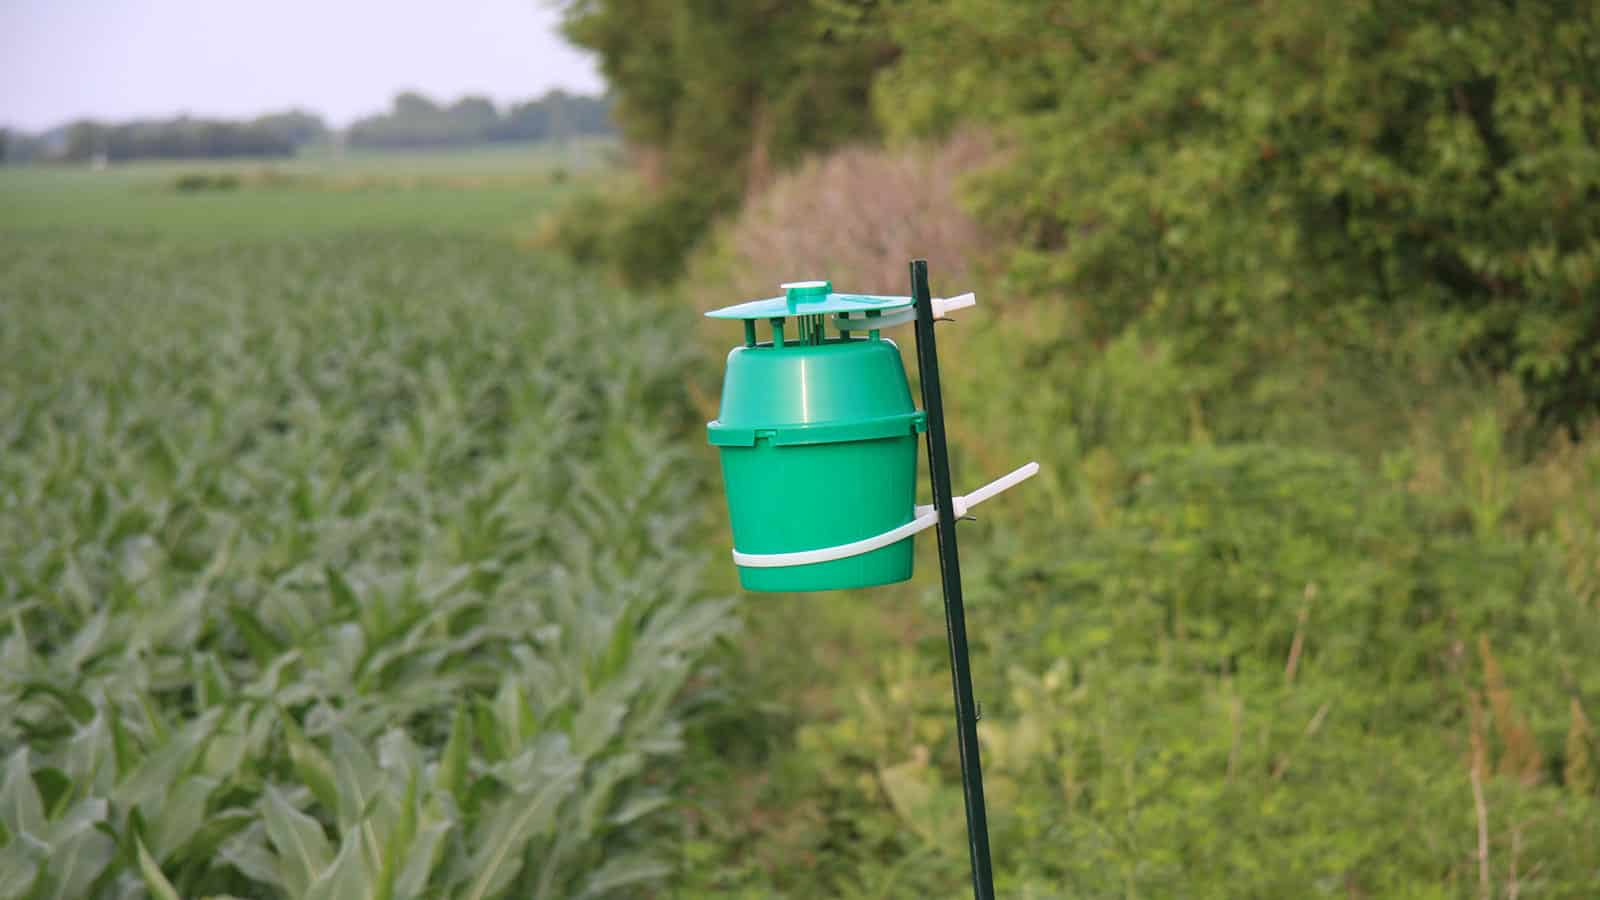 Thompsons Western Bean Cutworm trap